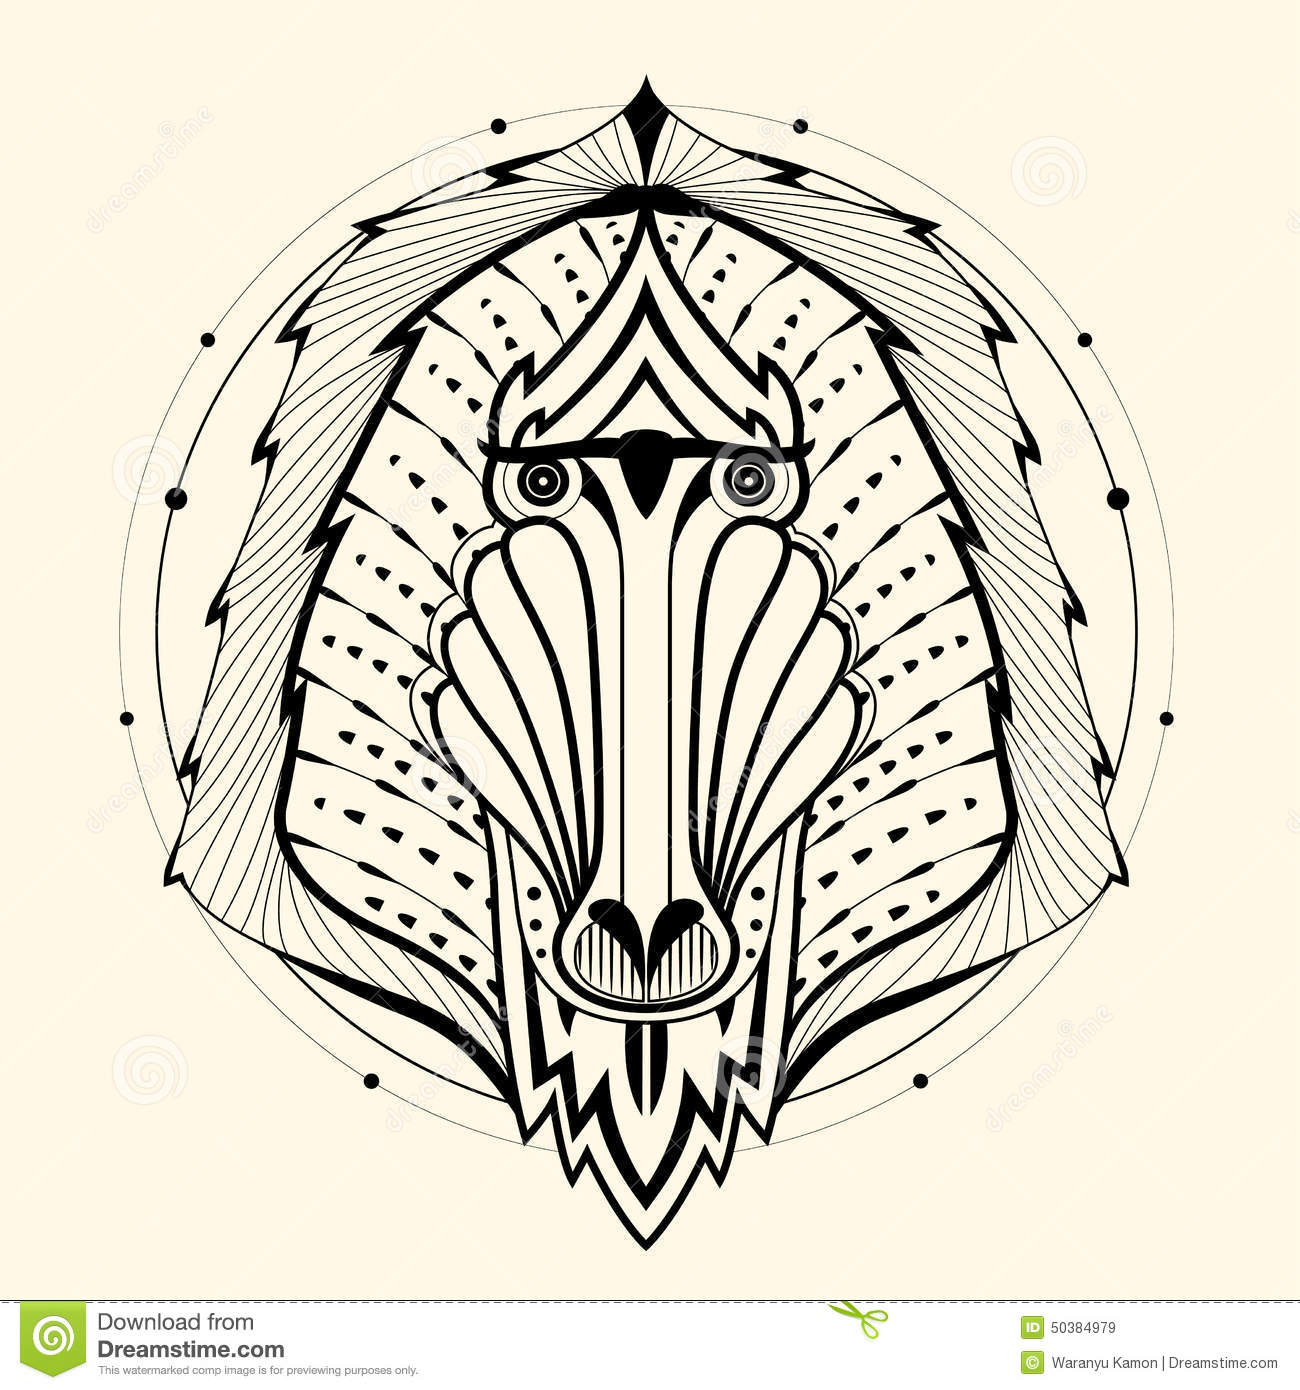 Baboon zentangle